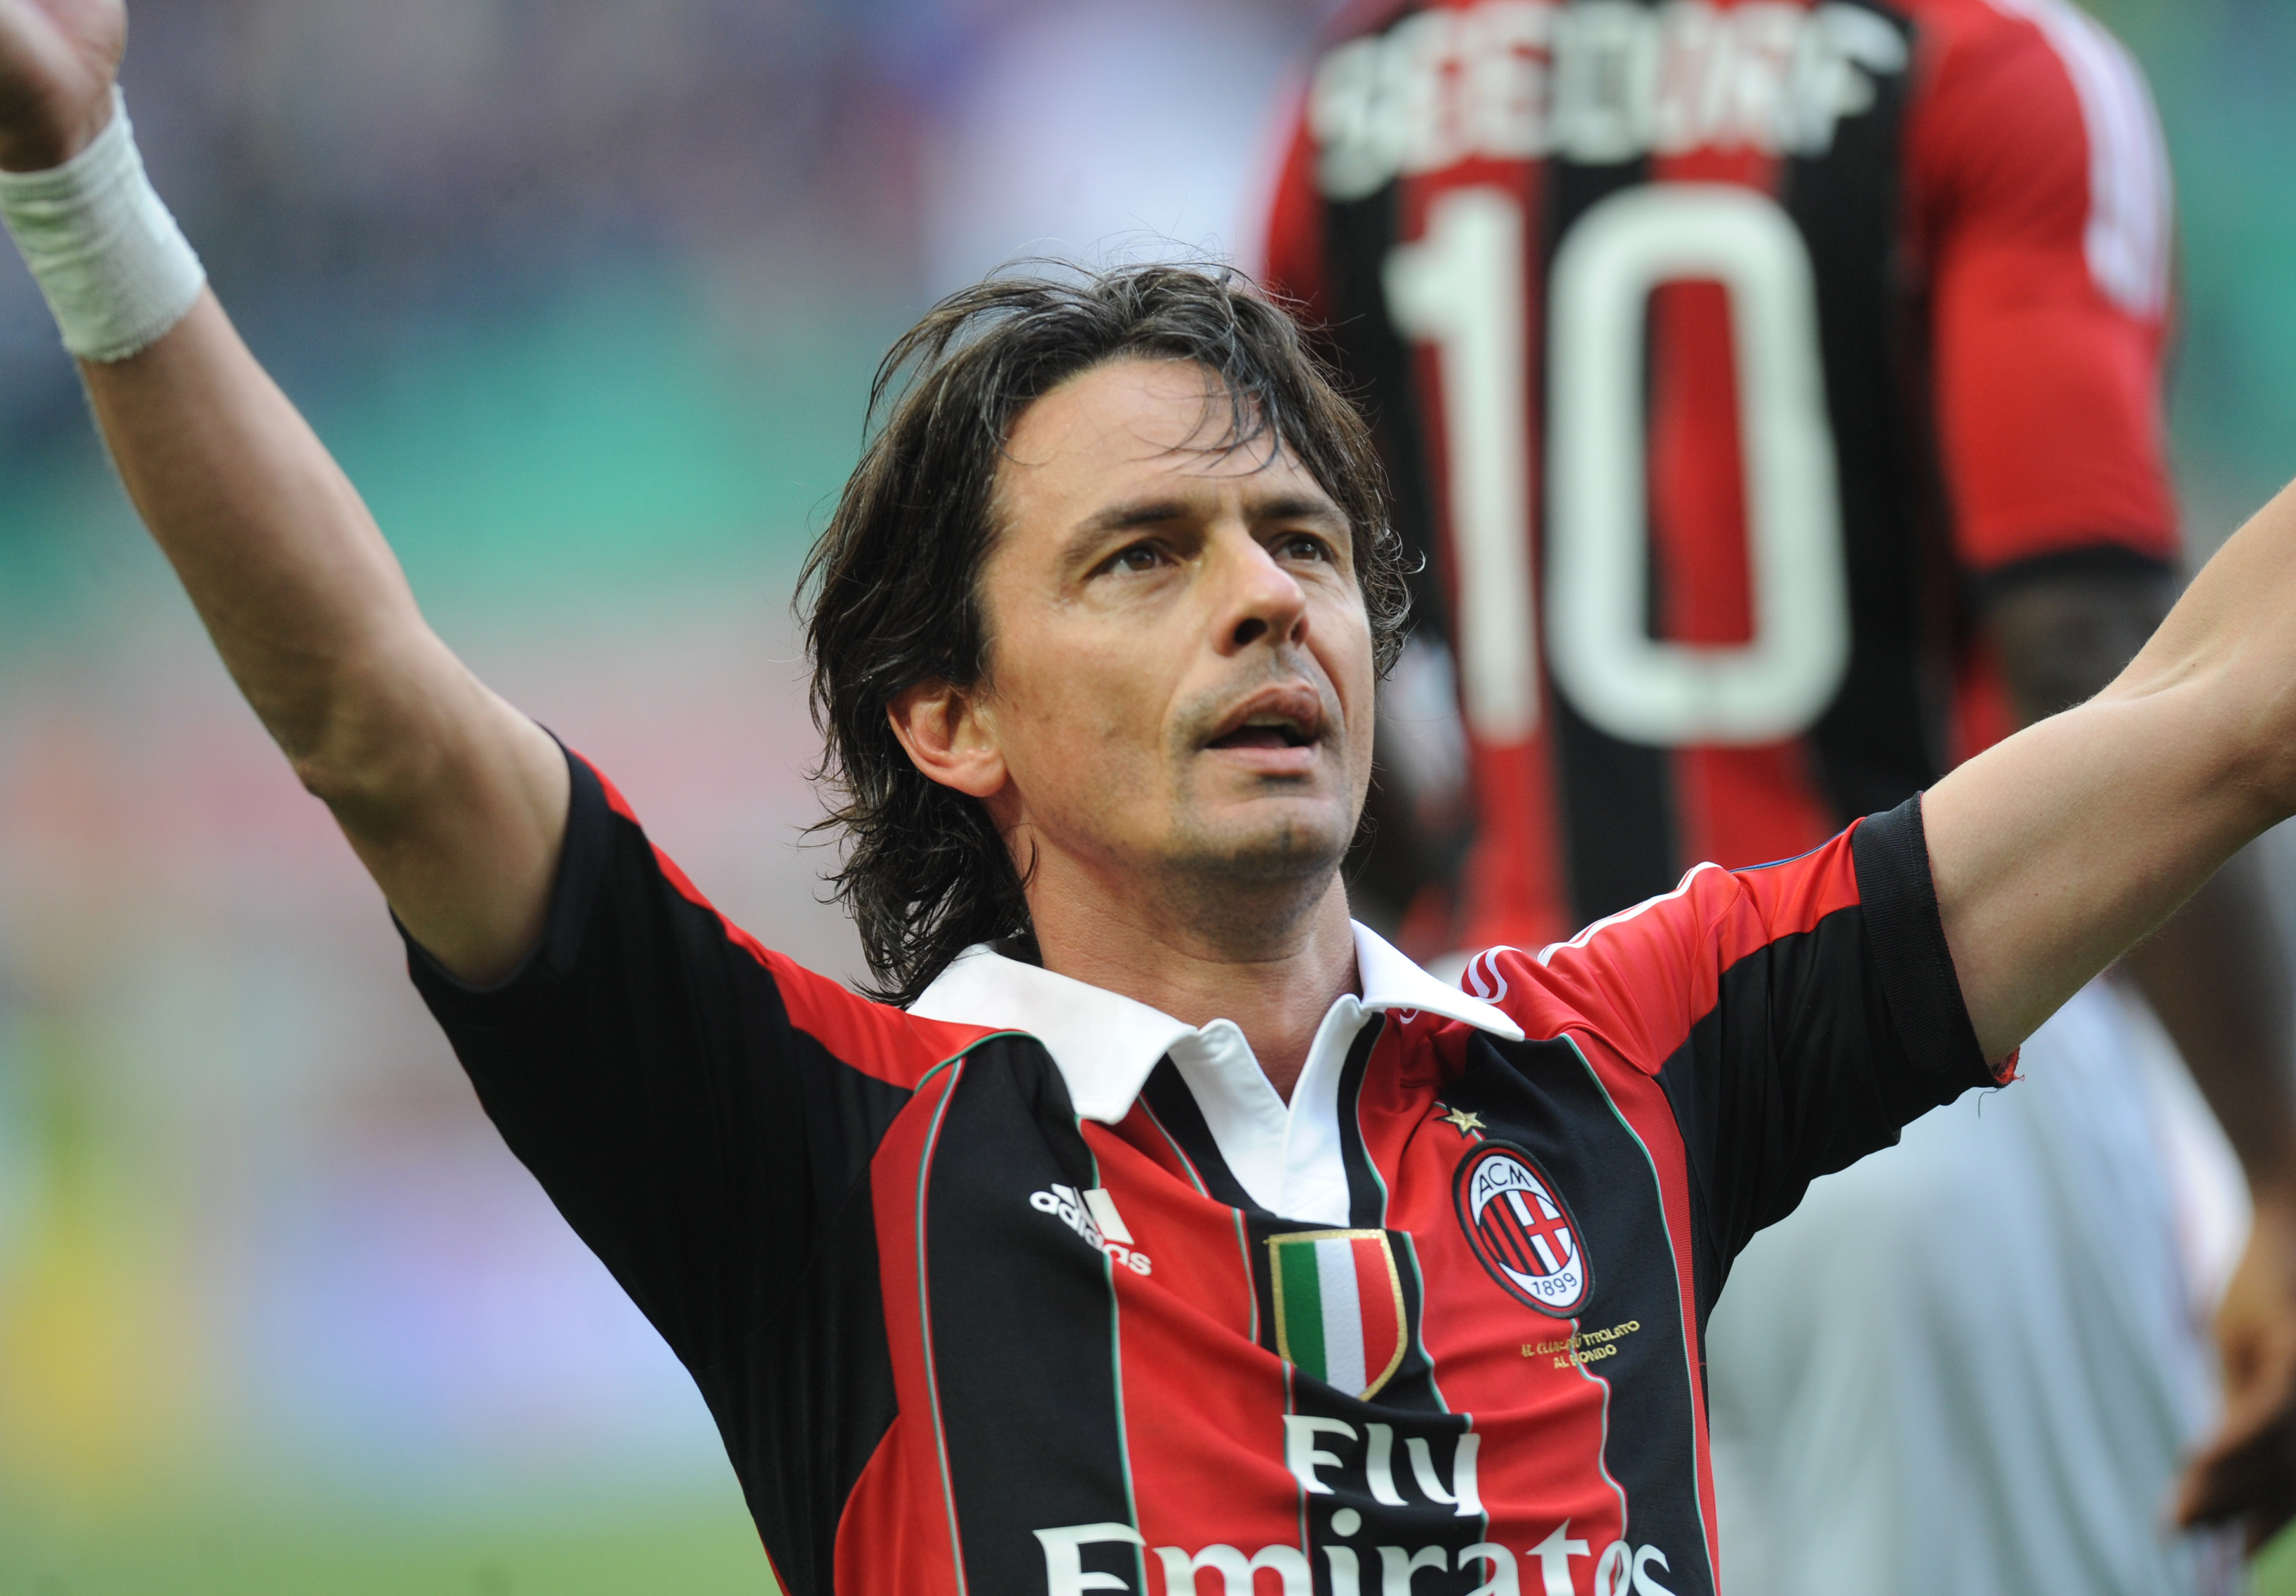 Opinions on filippo inzaghi